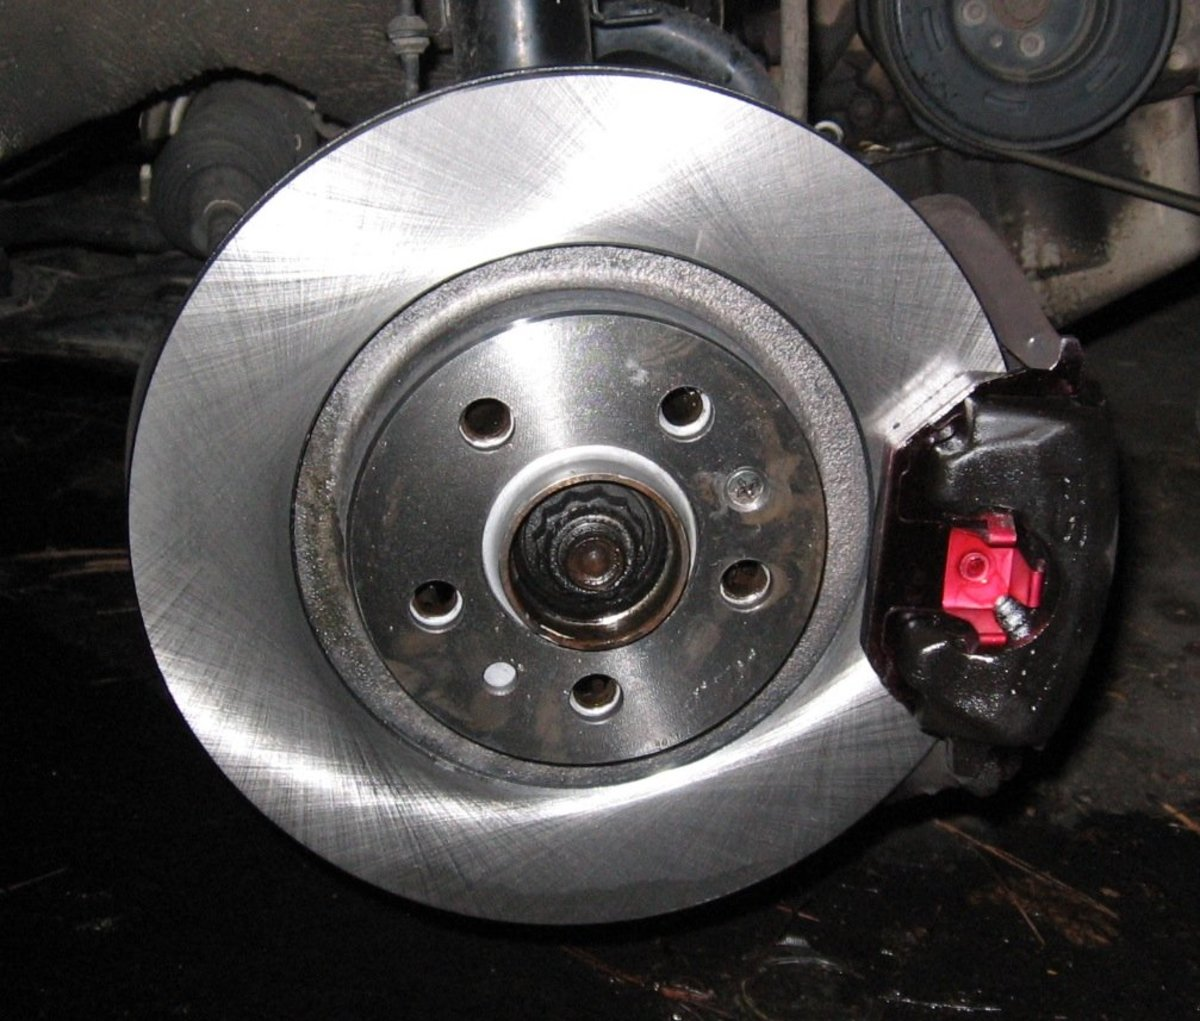 MKIV Jetta Golf 2.0L: How to Change Front Brake Pads and Rotors